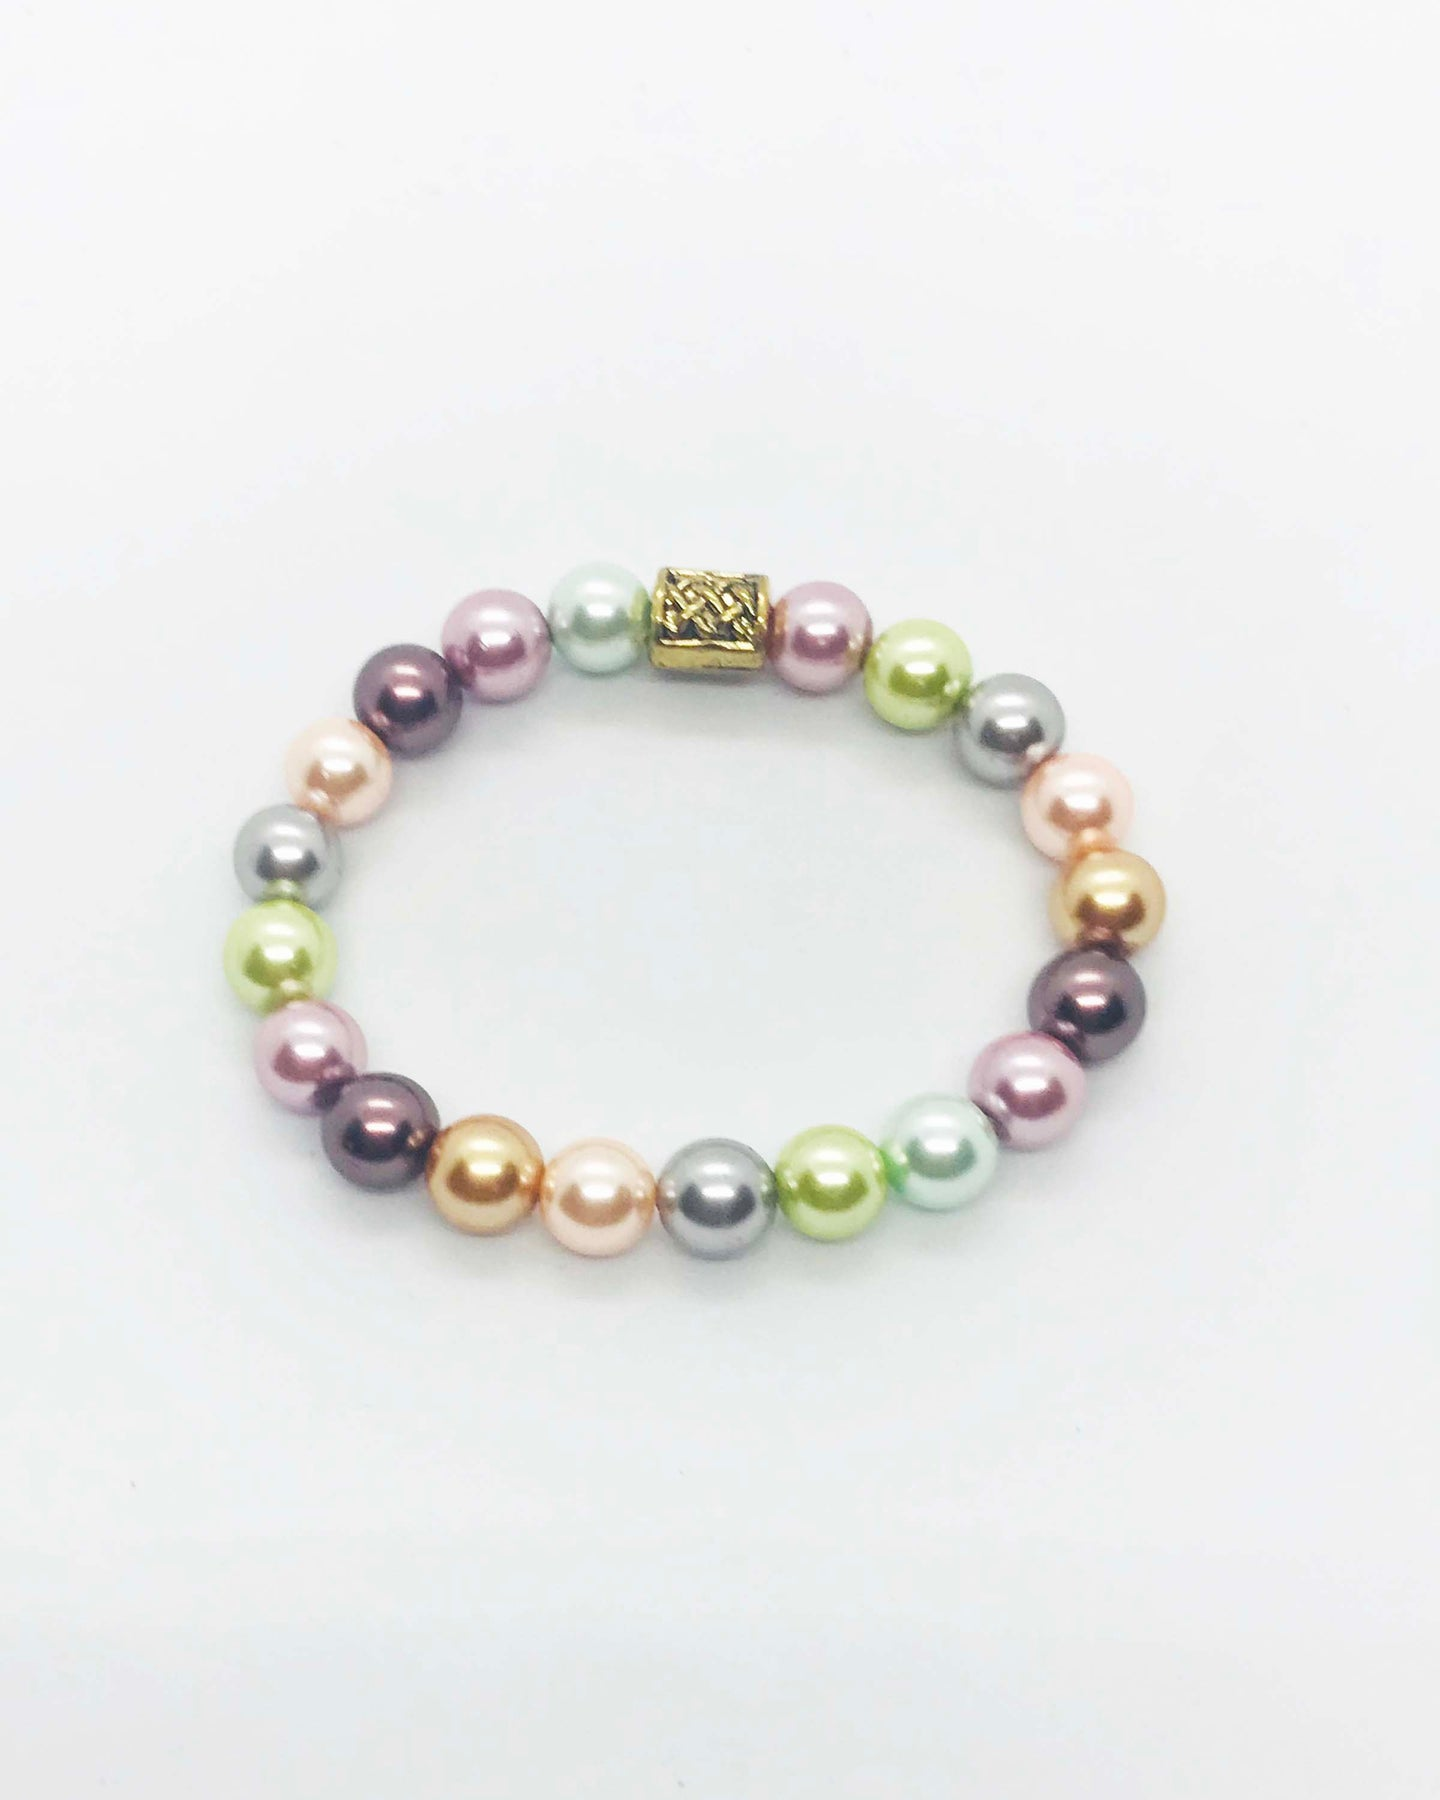 Glass Bead Bracelet - B957